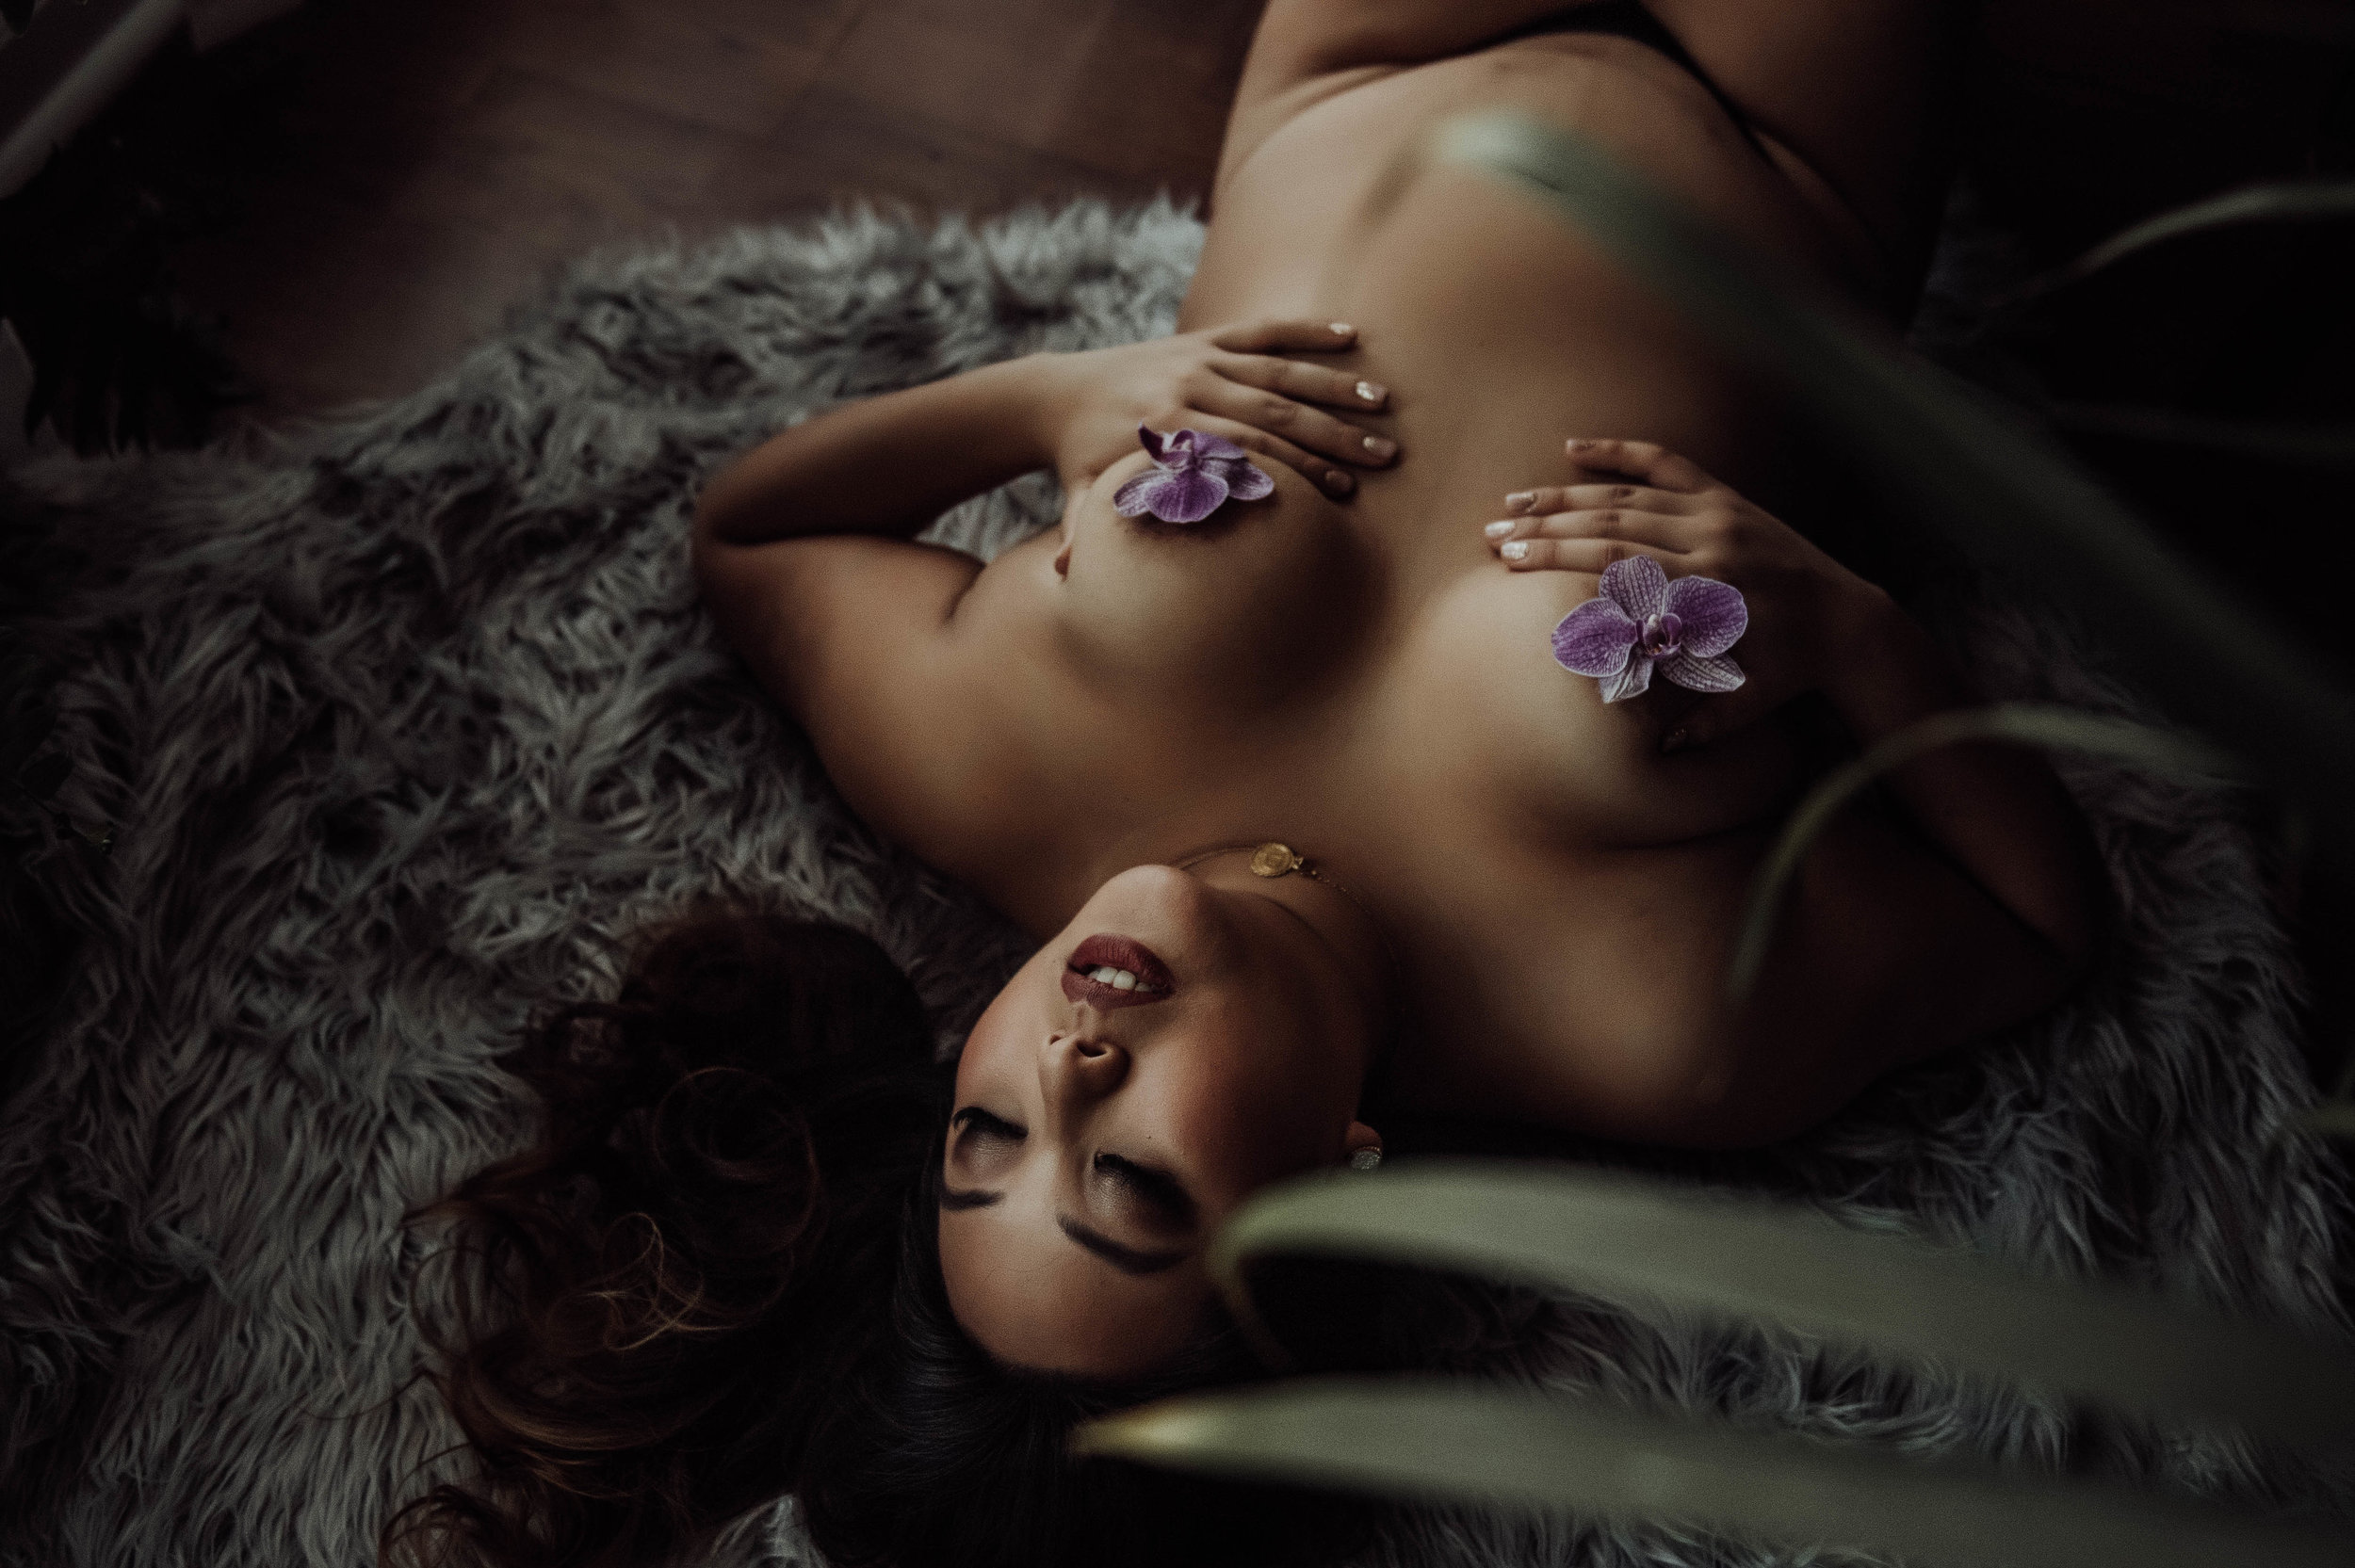 Nude Plus size asian woman laying on fur rug with flowers boudoir photography new york studio